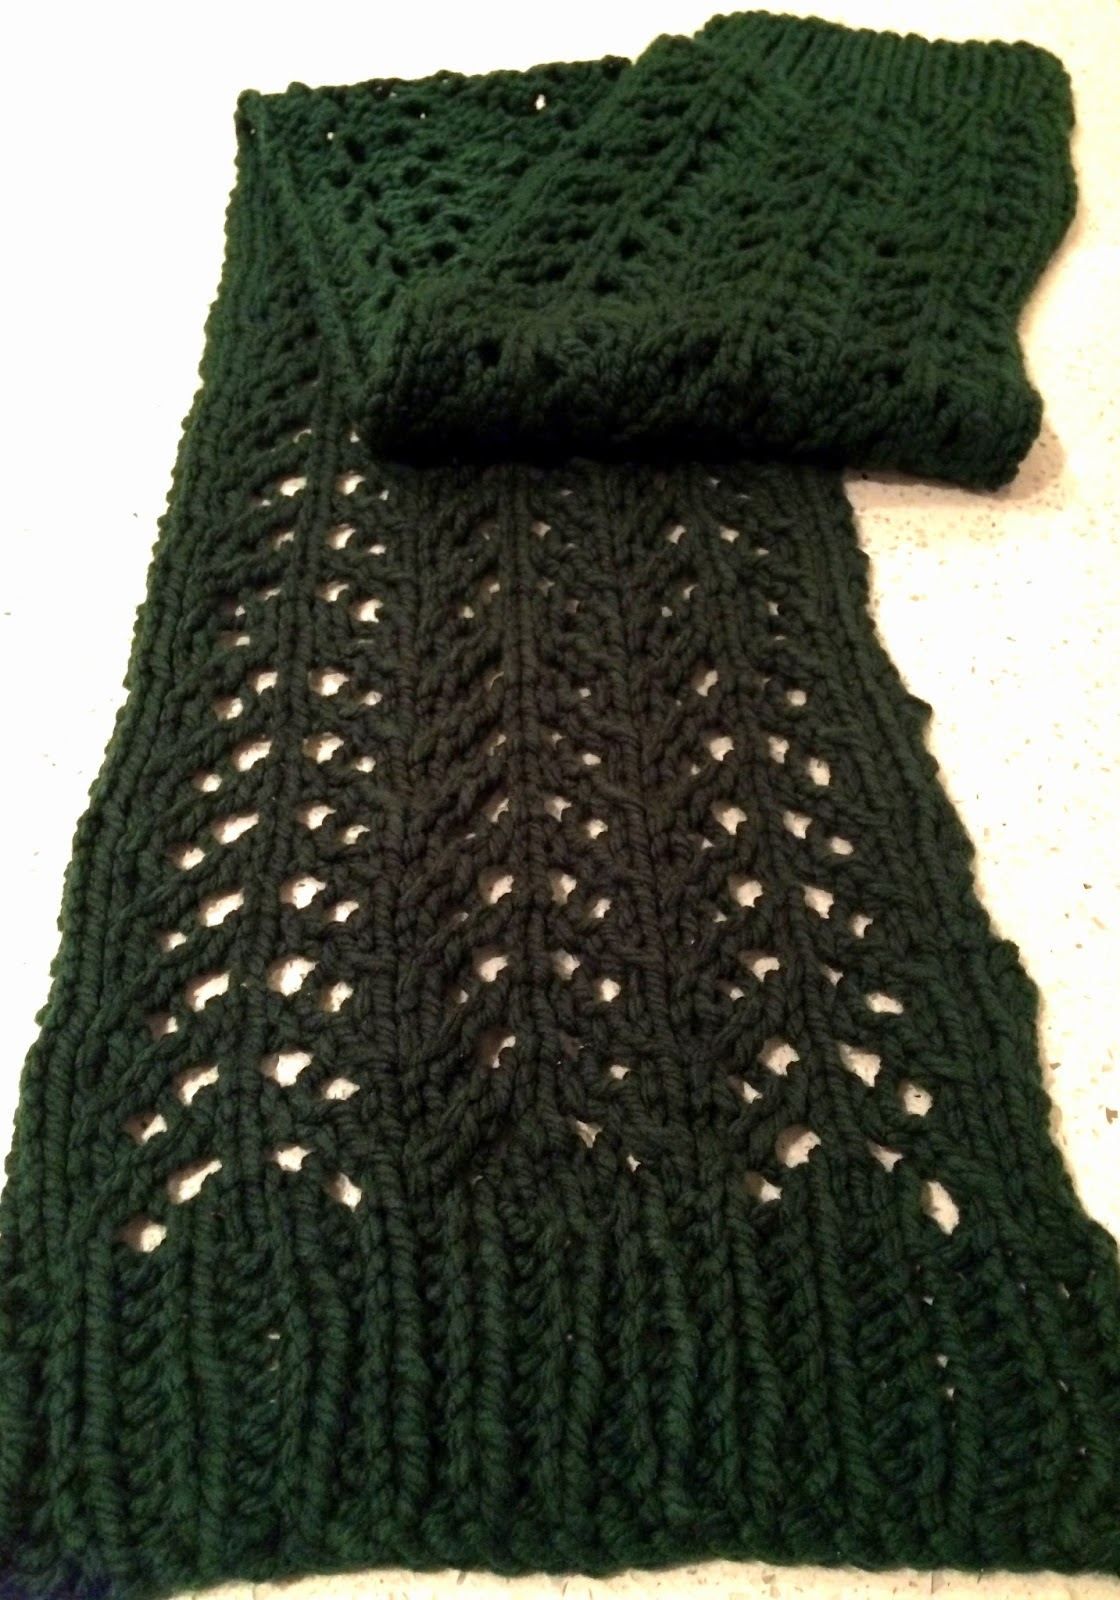 The Createry Shop: Chevron Pattern Scarf - Exploring Knitting Lace ...